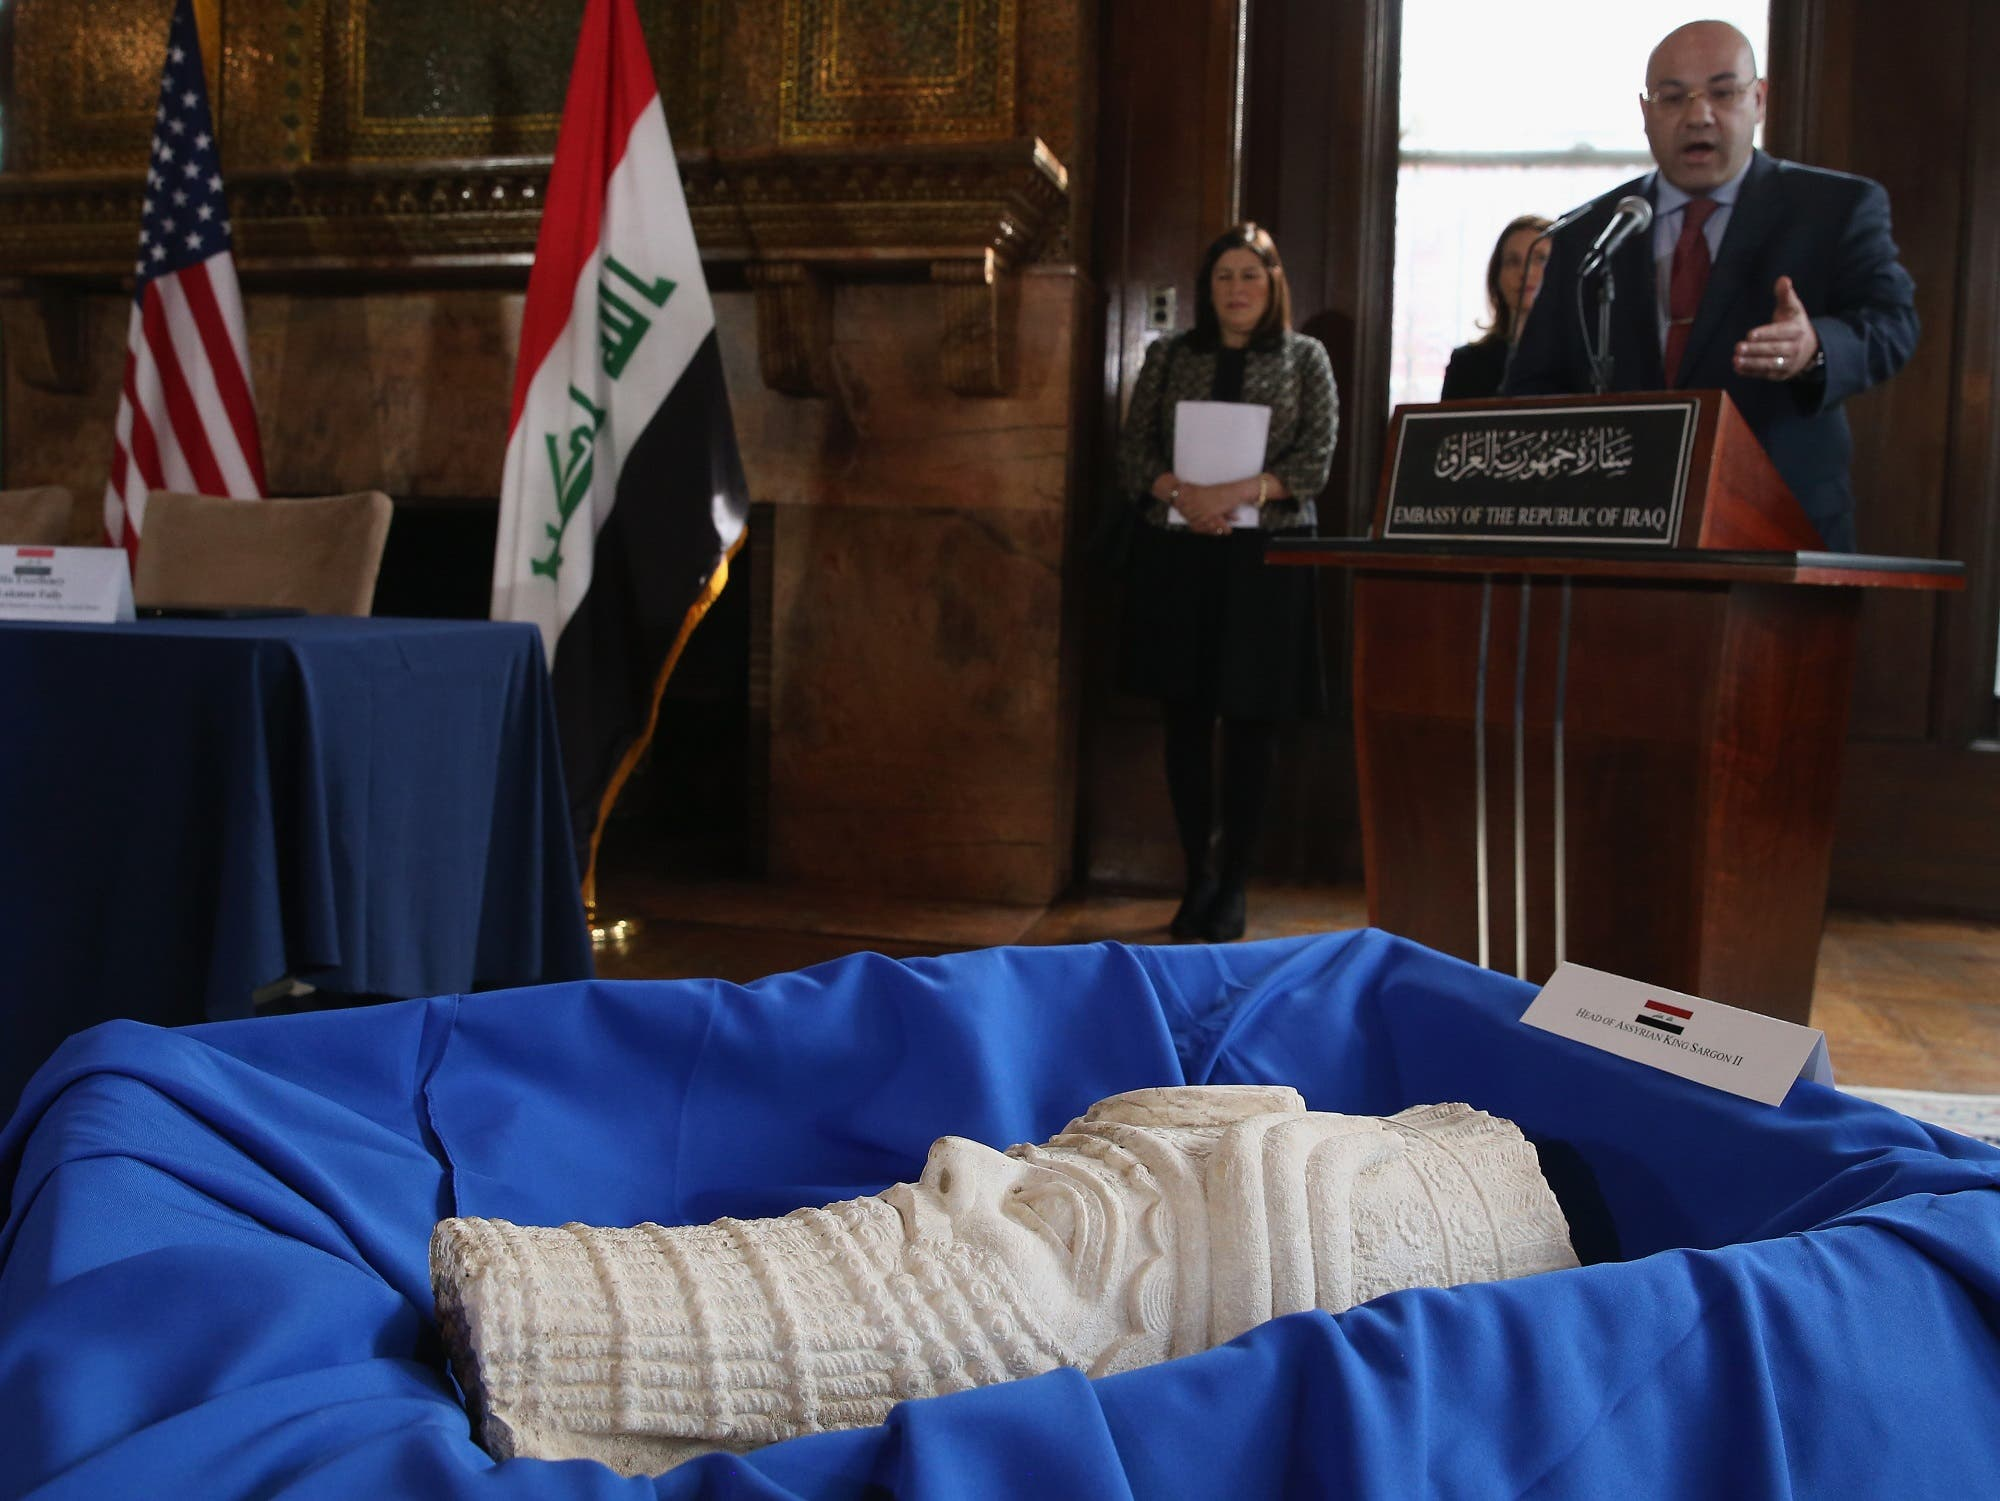 Iraqi Ambassador to the US Lukman Faily speaks in front of a sculpture of the head of Assyrian King Sargon II on March 16, 2015 in Washington, DC. (AFP)